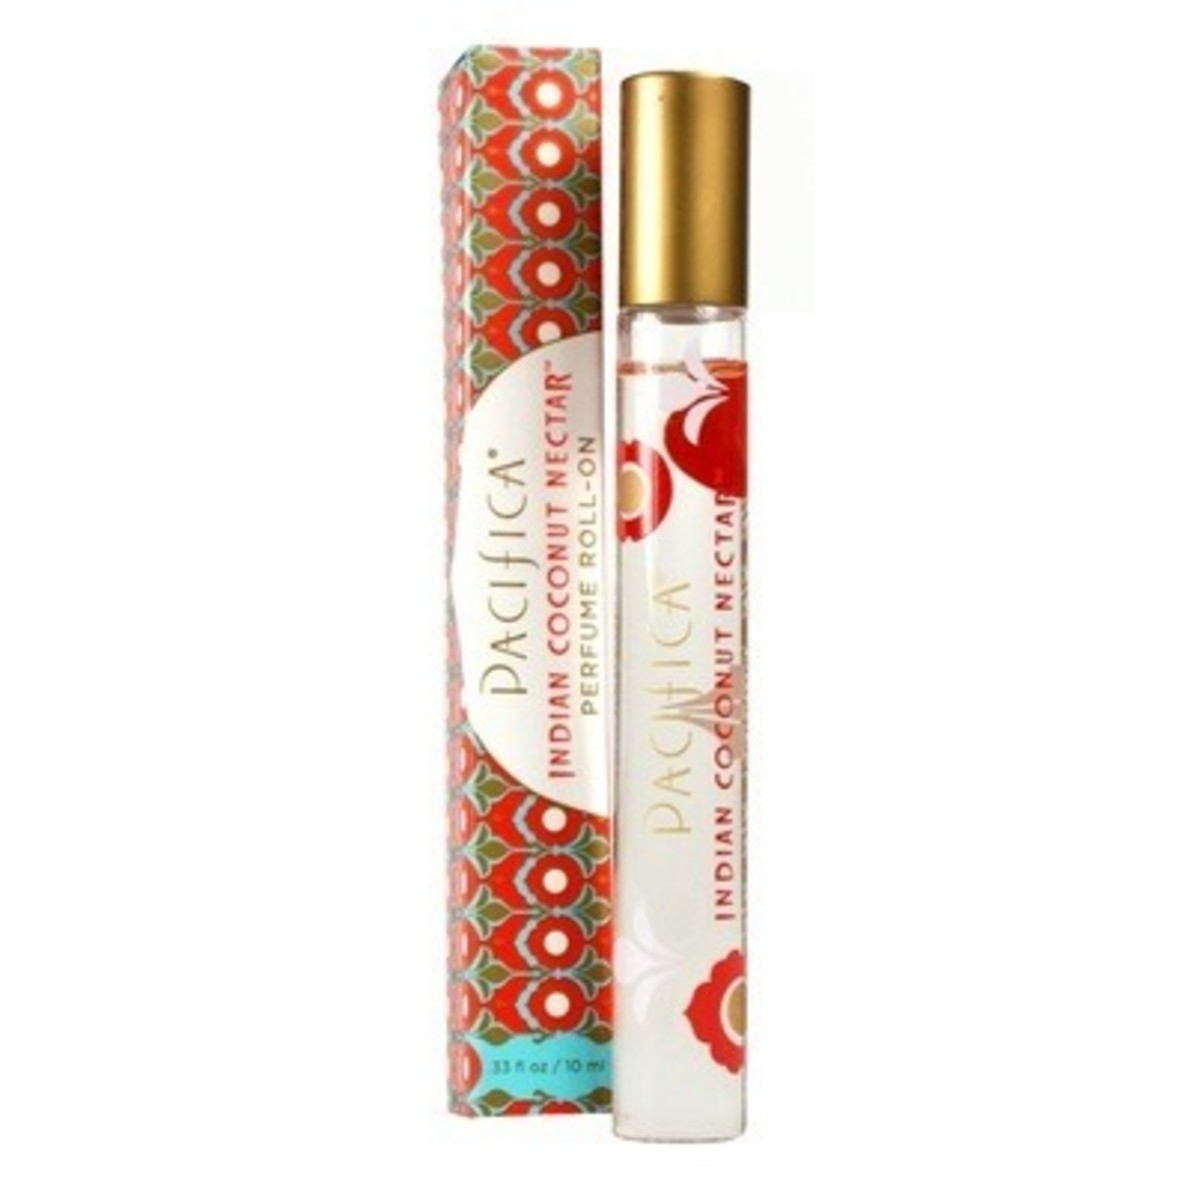 Pacifica's Indian Coconut Nectar Roll-On